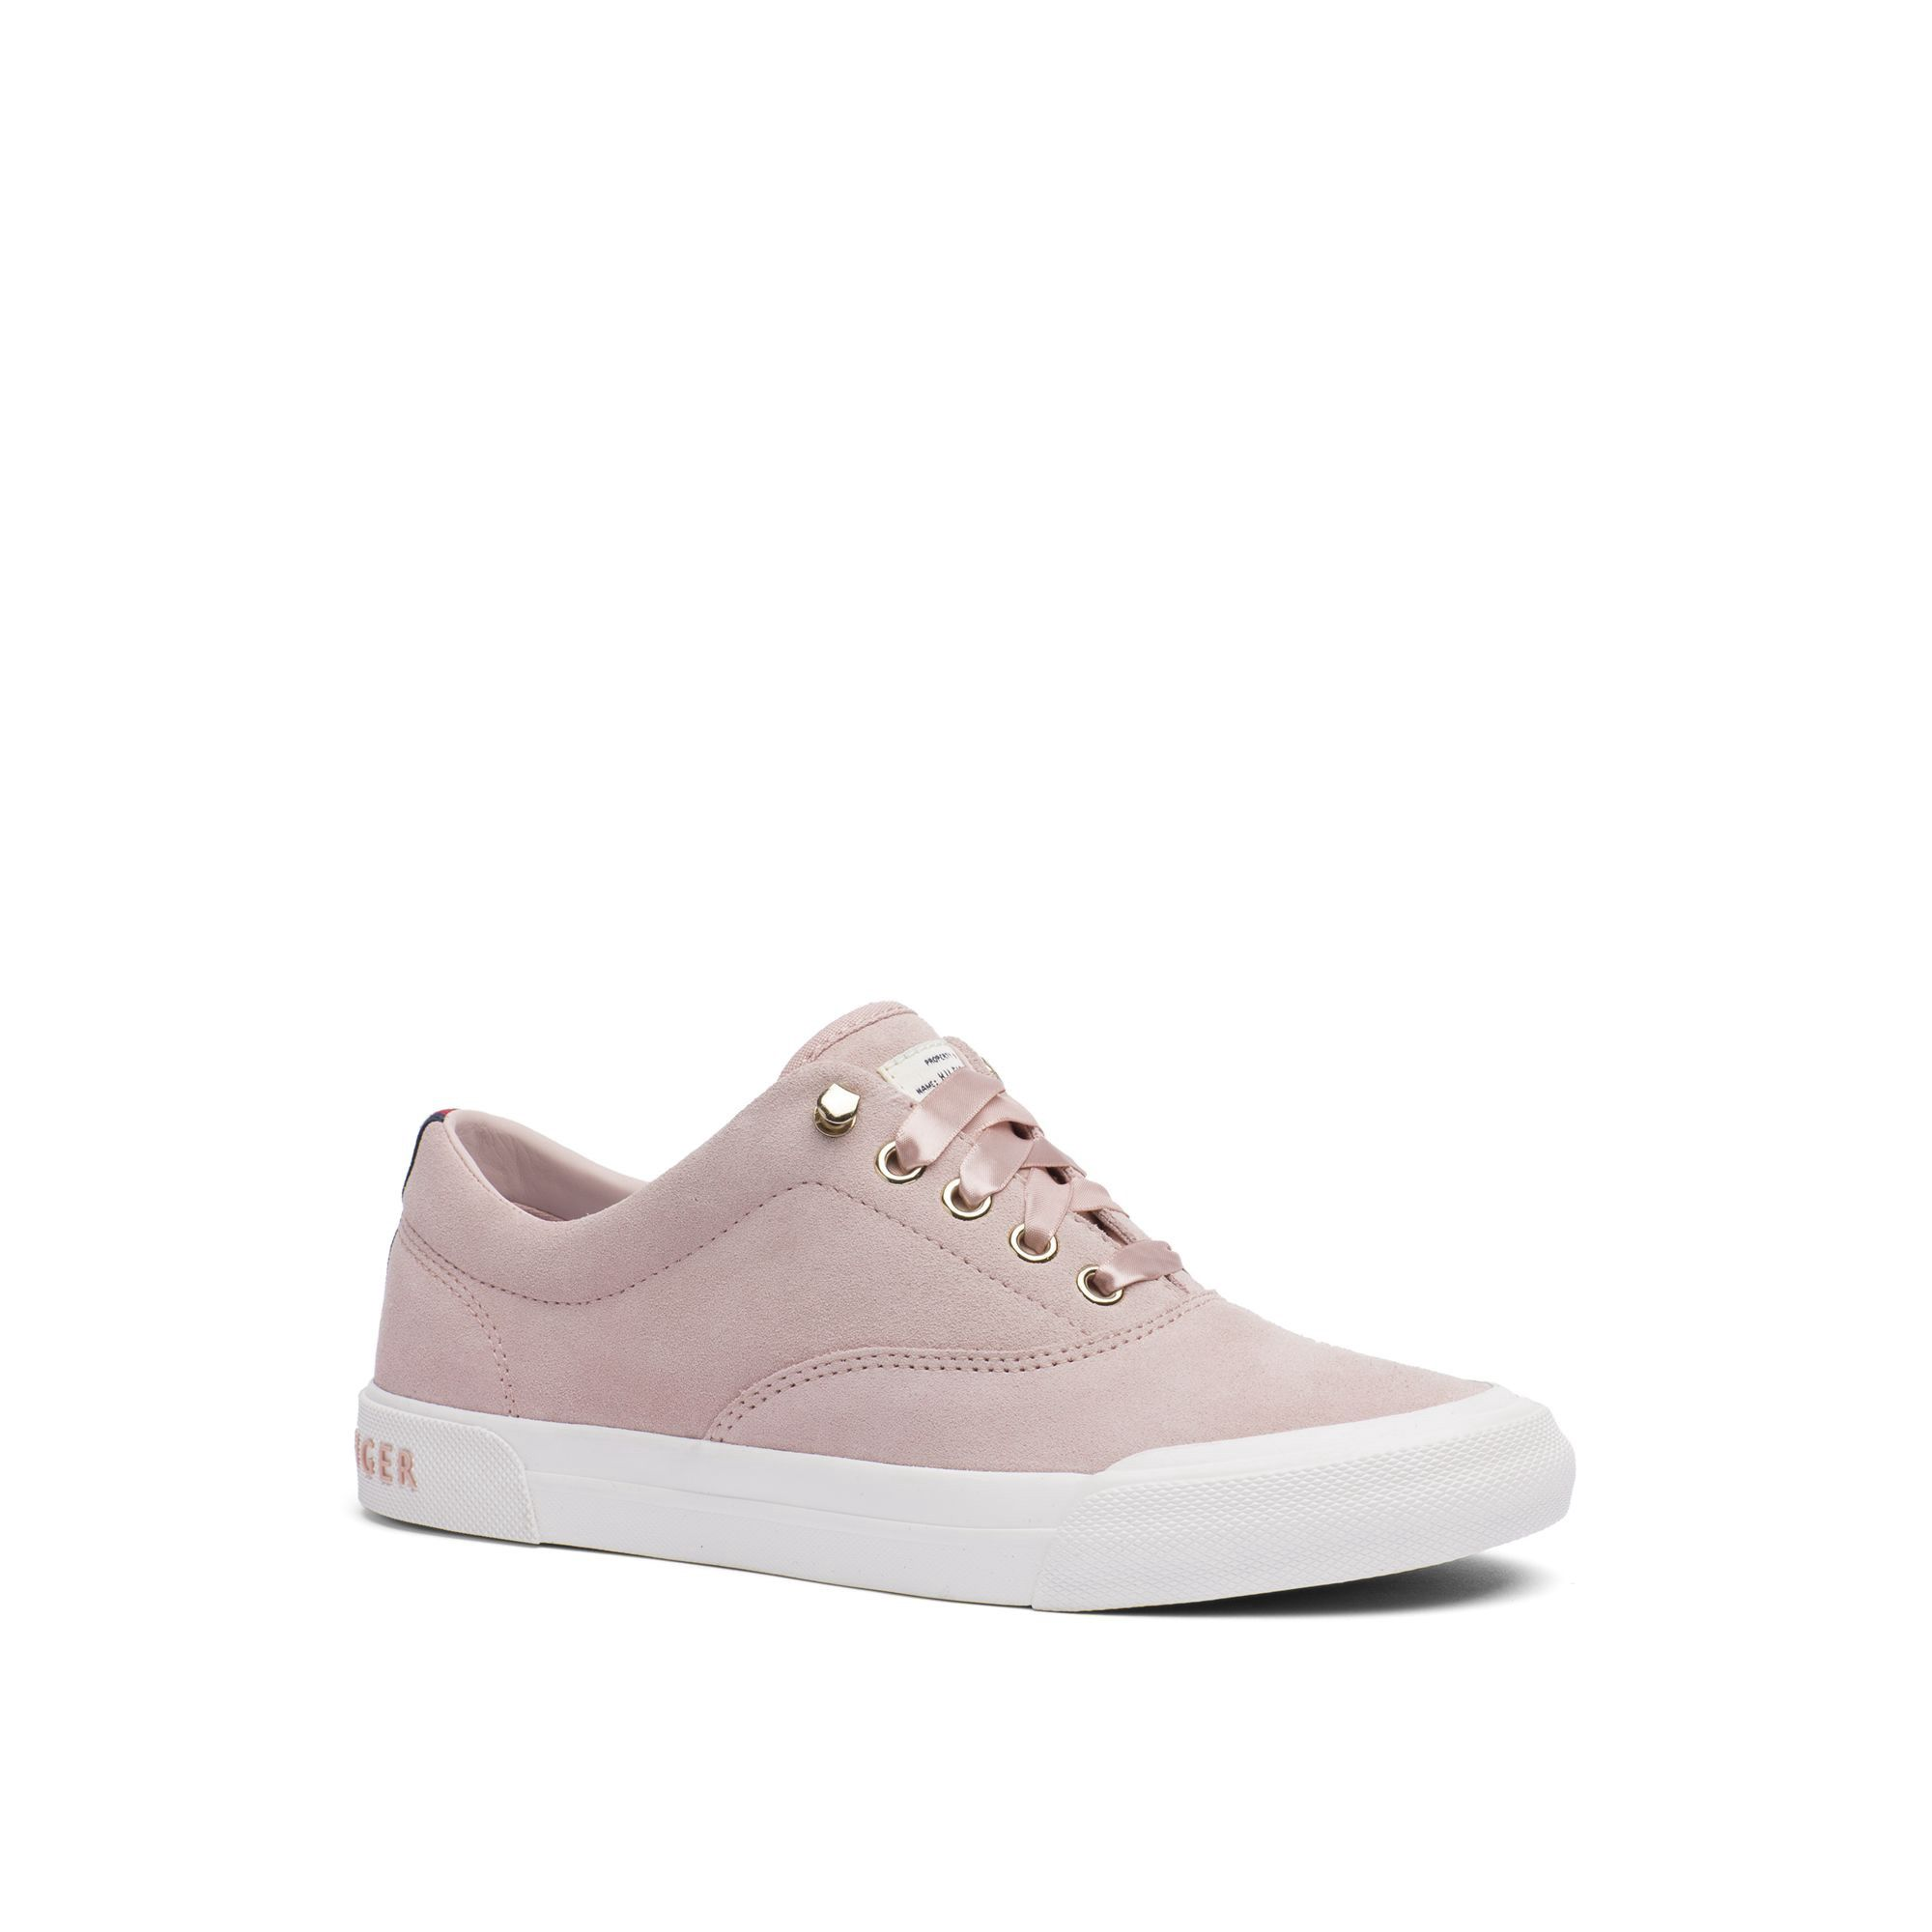 Anzai Varning kompensera  Original Suede Sneaker - Dusty Rose | Sneakers, Tommy hilfiger ...